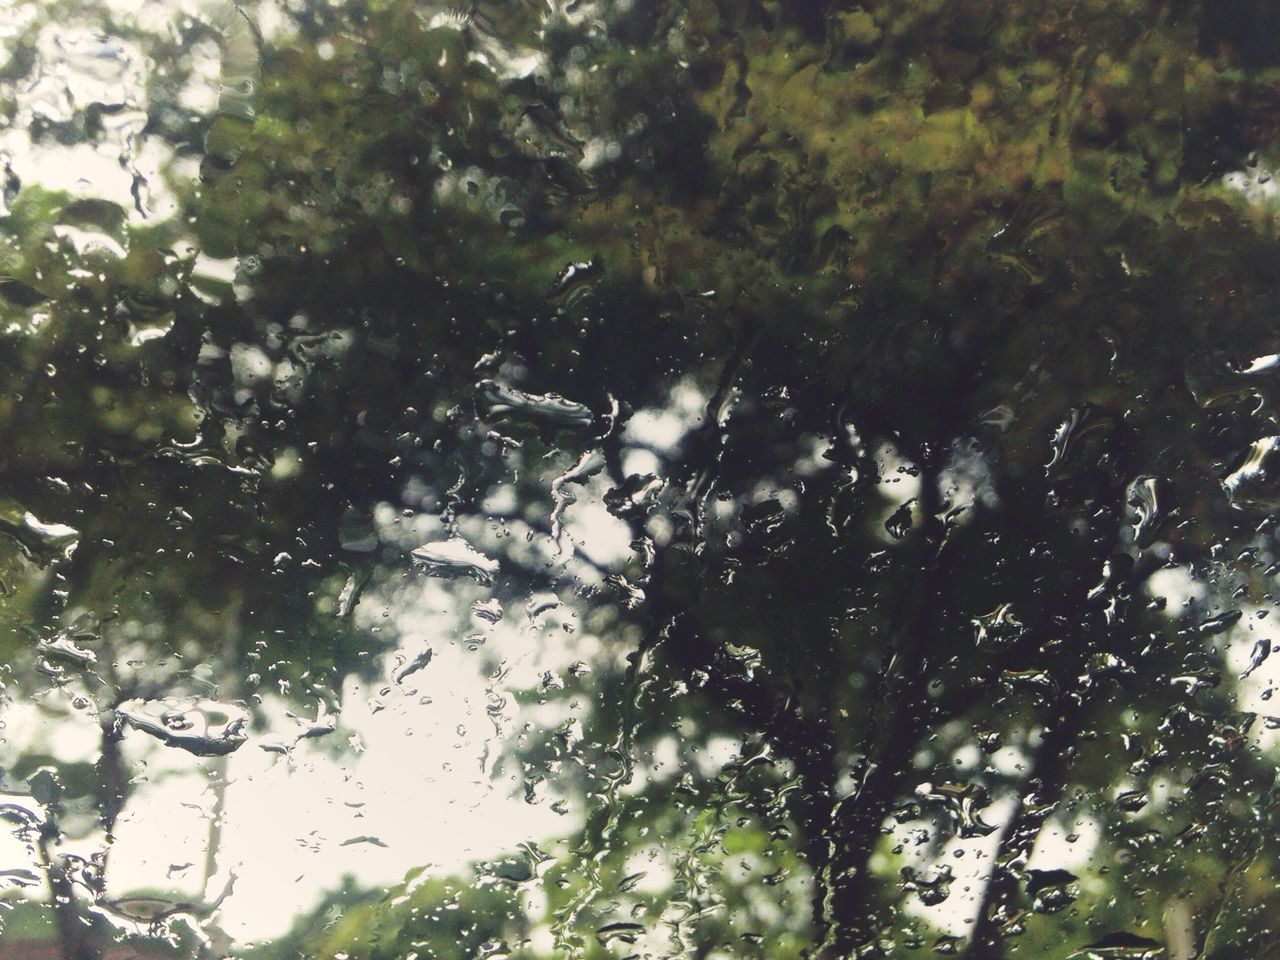 nature, tree, no people, day, growth, beauty in nature, outdoors, freshness, close-up, sky